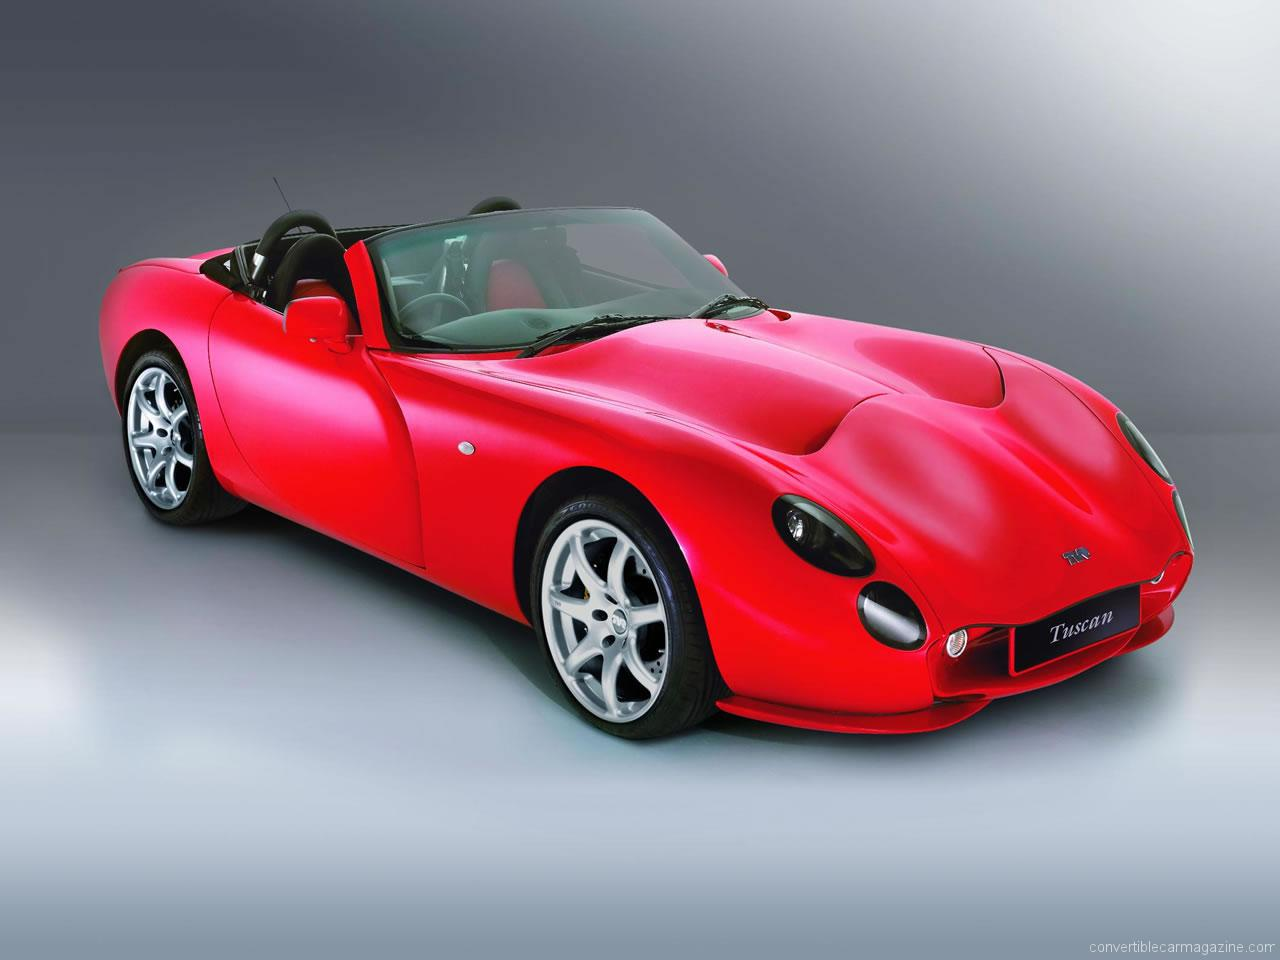 Used car buying guide: TVR Griffith - YouTube